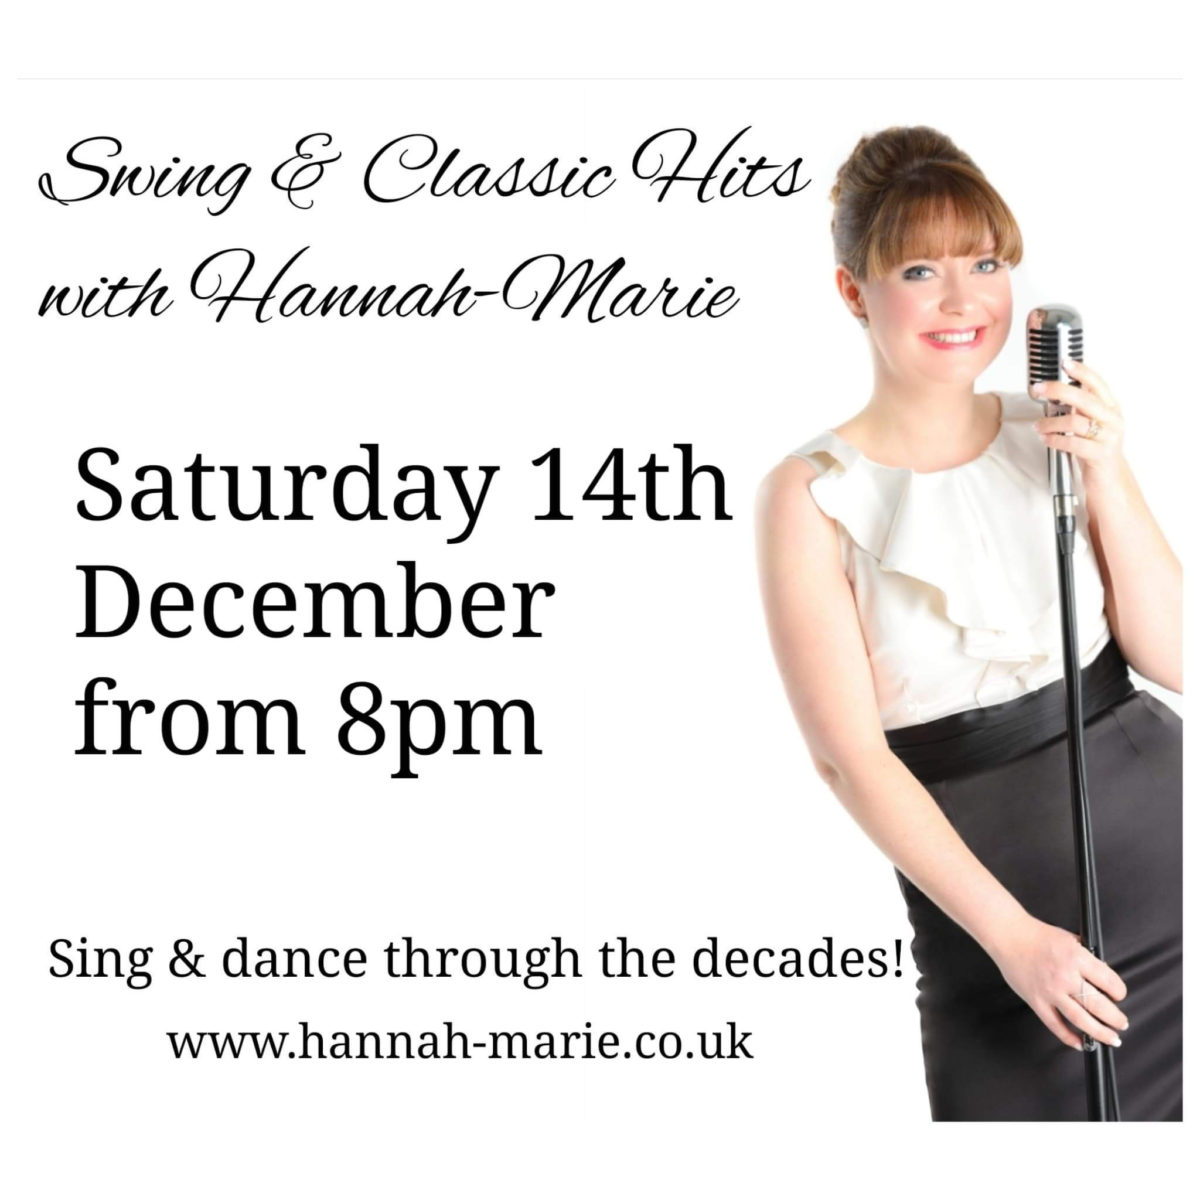 Sat 14th Dec – Swing & Classic Hits with Hannah Marie